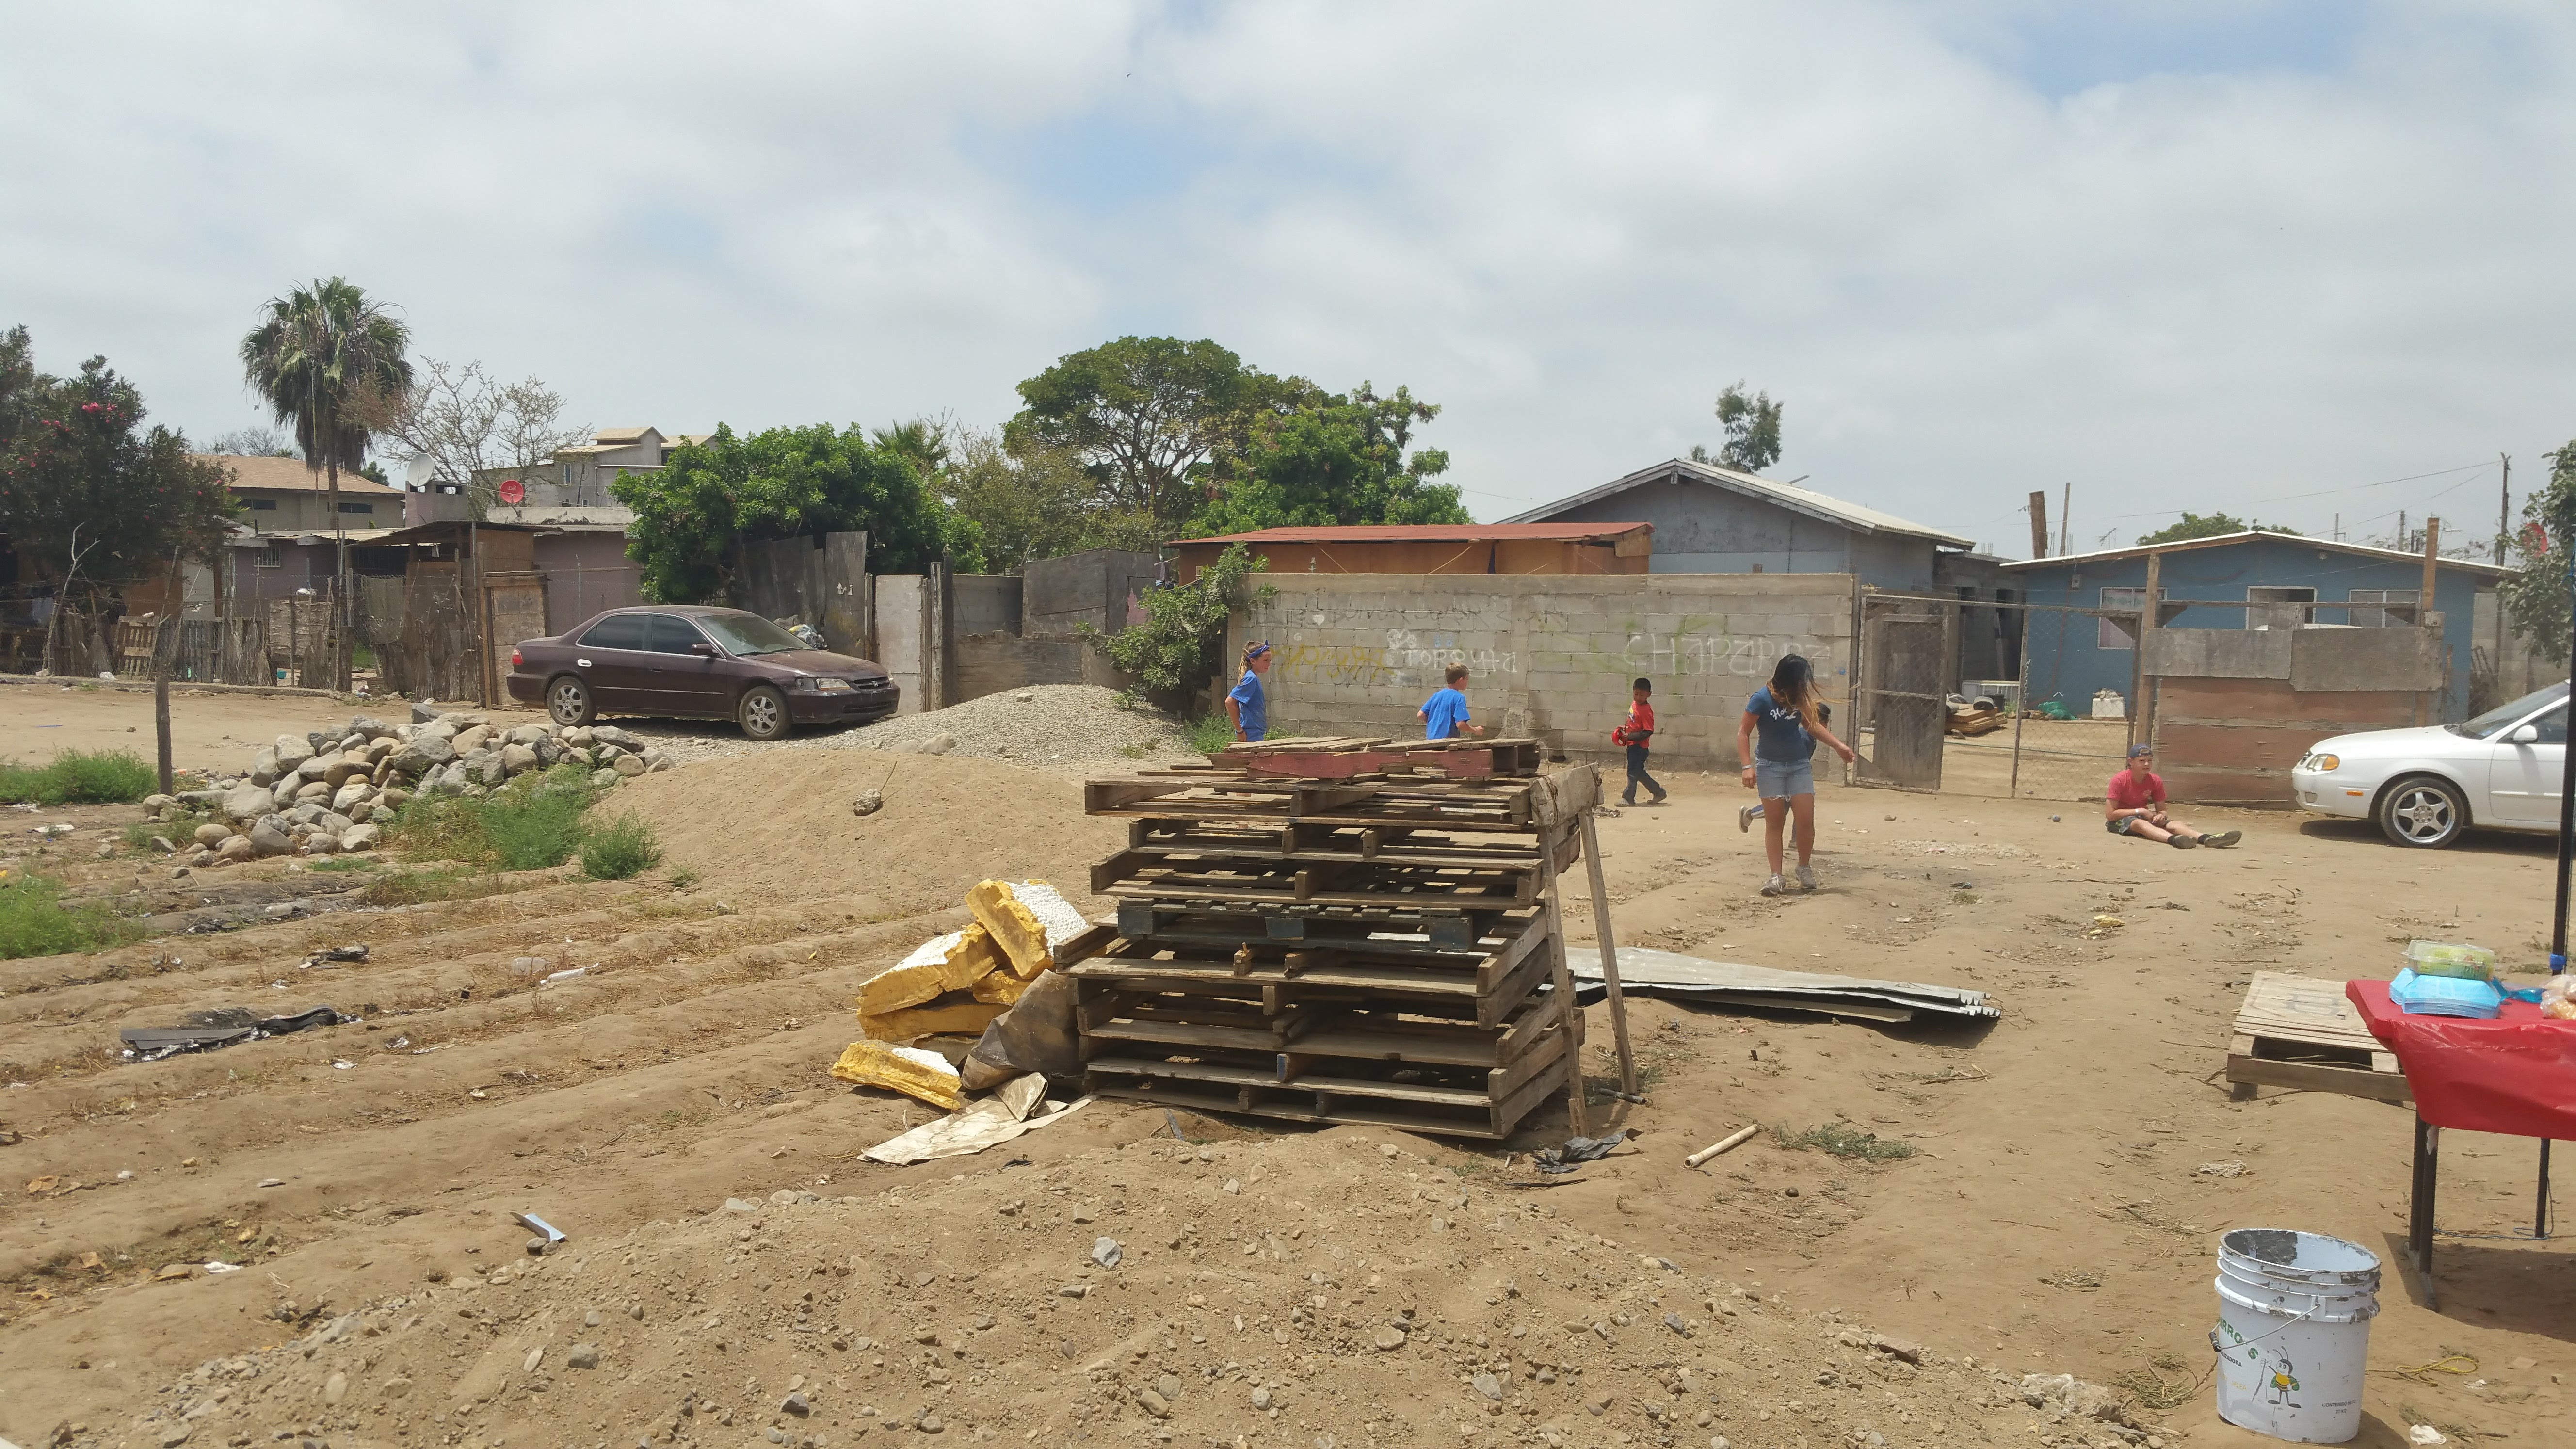 House Of Hope – The Service Of Building Up A House – with The Grace Of God